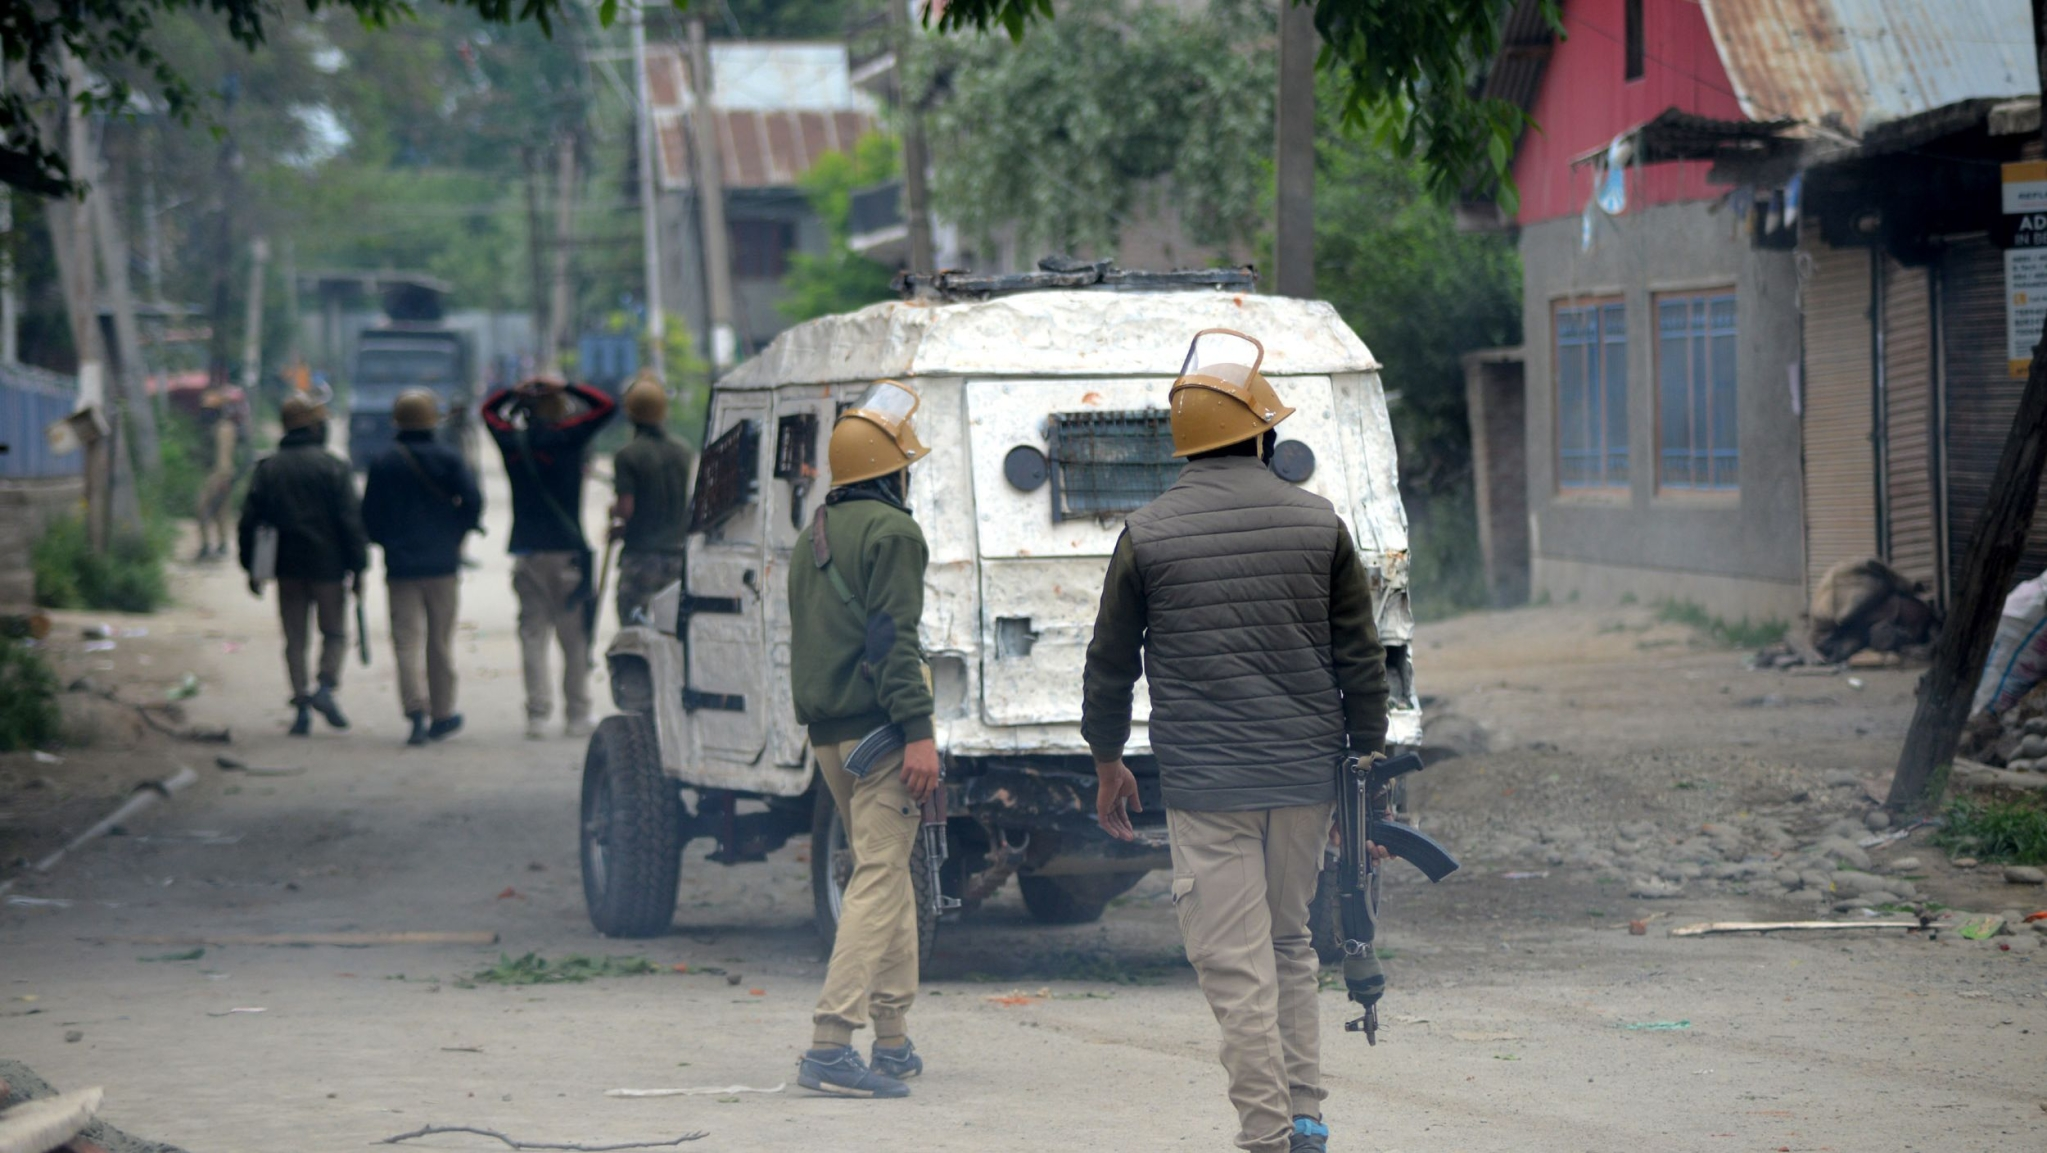 In J&K, Terror Groups Plan to Avenge Teacher's 'Custodial Killing'